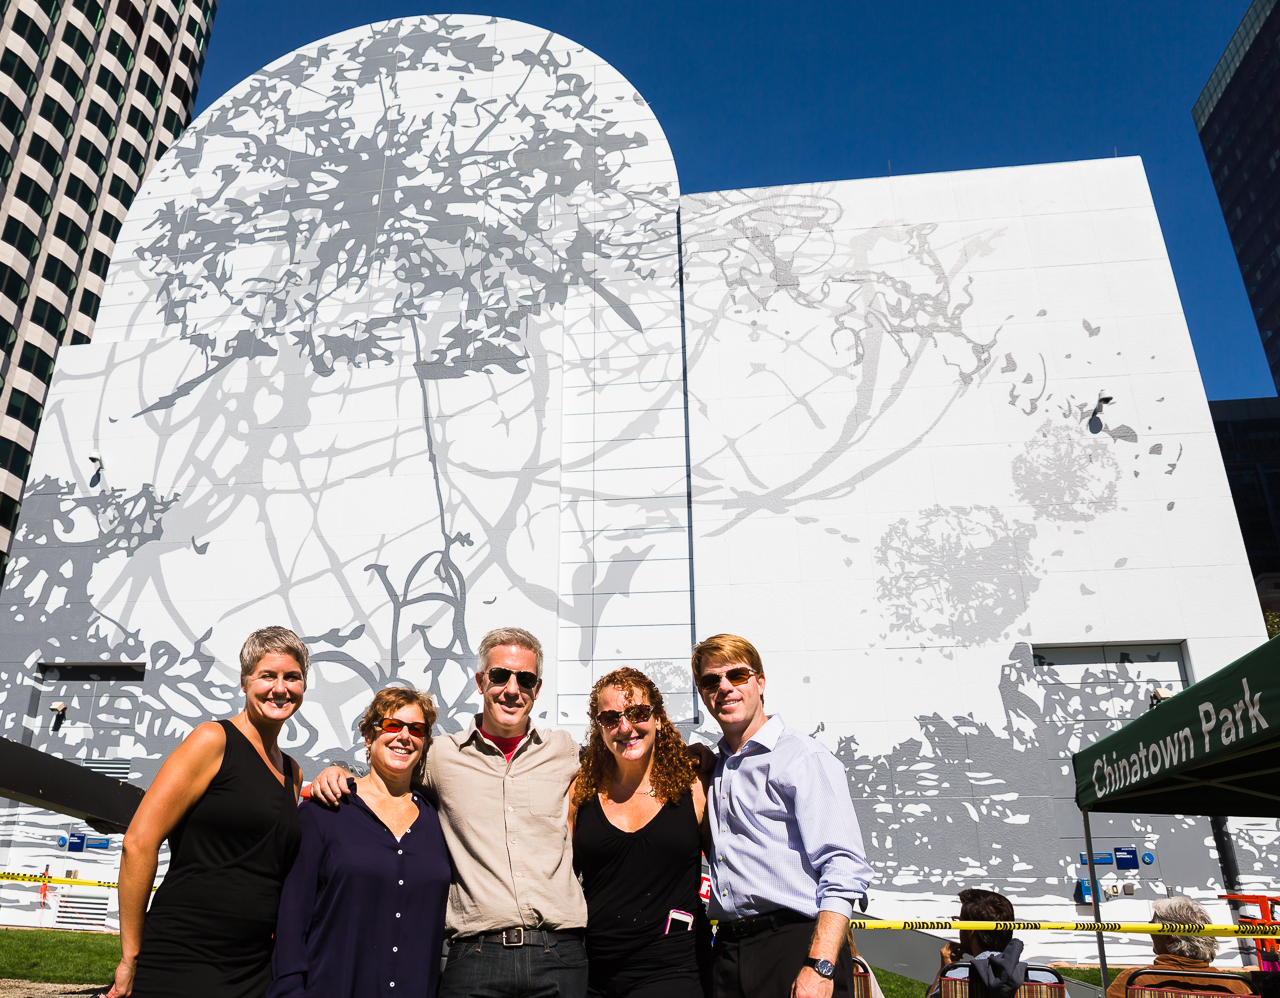 Remanence – Salt and Light (Part II) at Dewey Square on the Greenway with (L-R) ICA Senior Curator Jenelle Porter, Director of the ICA Jill Medvedow, Artist and Creator, Matthew Richie, Signs Unique Tricia O'Neill and Greenway Conservancy COO Jesse Brackenbury (Photo by Matt Conti)